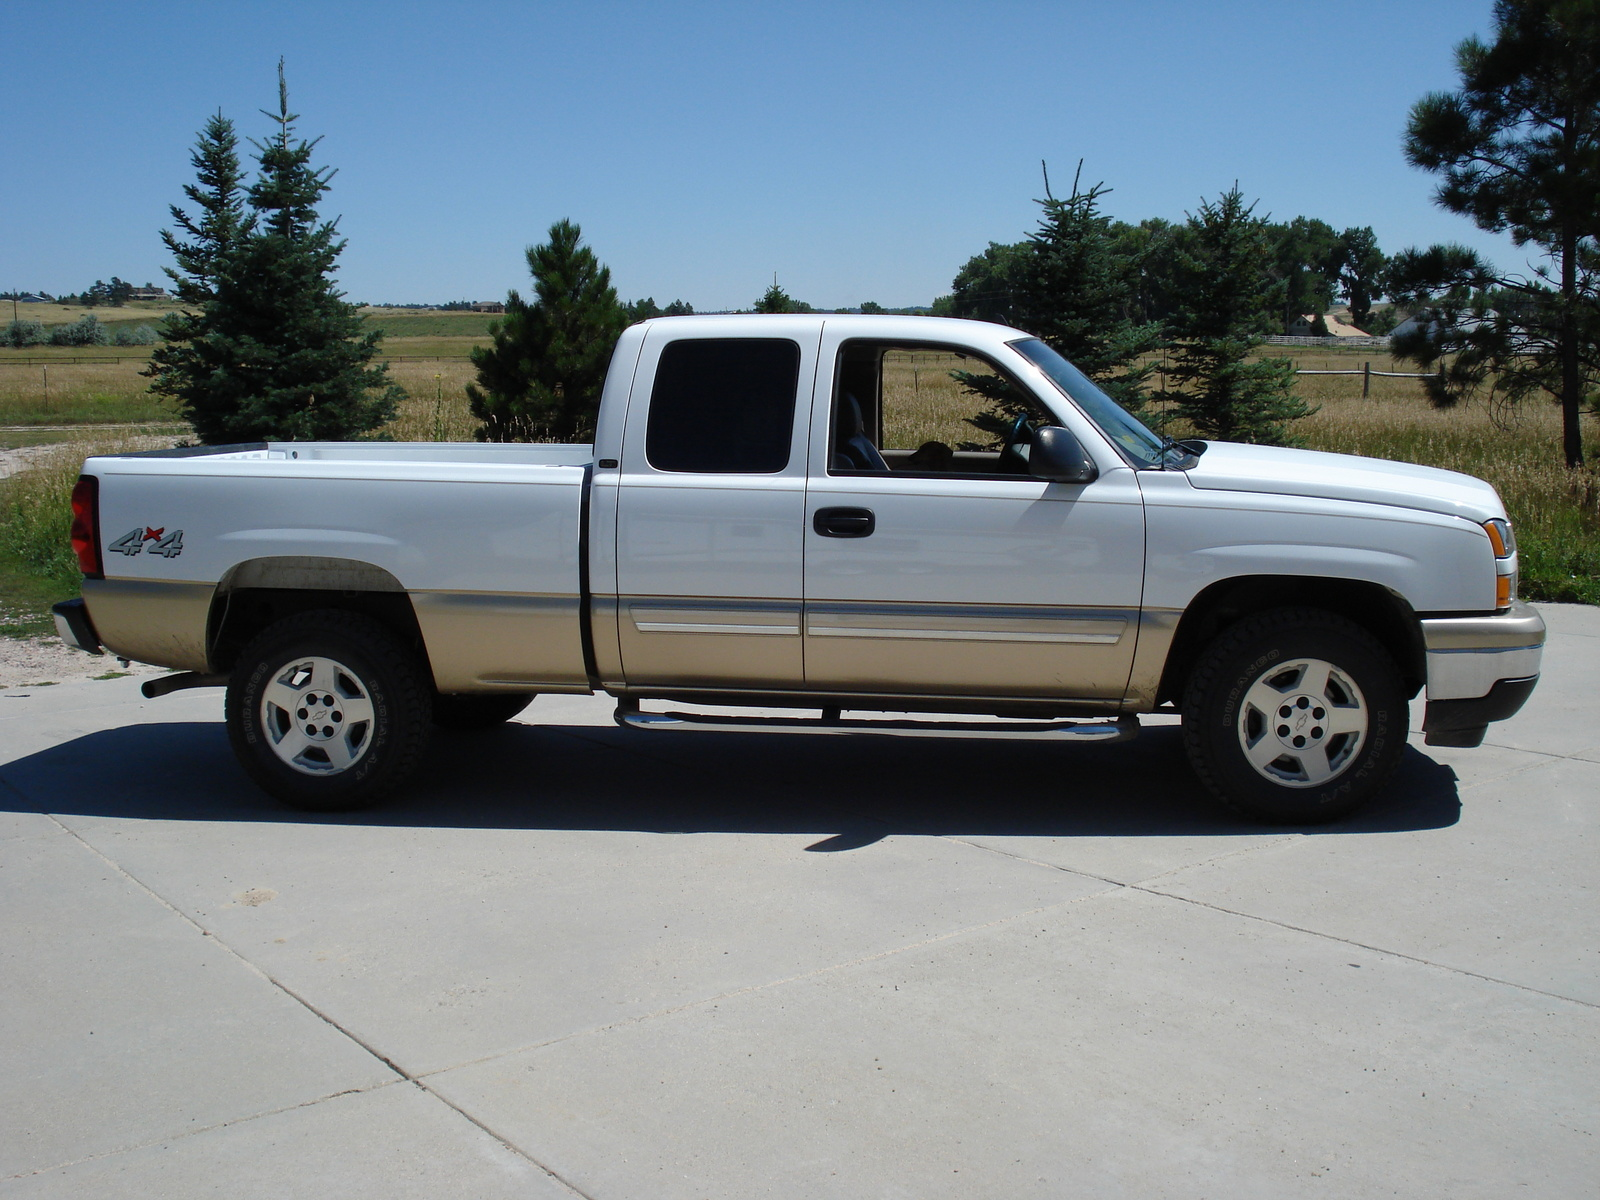 2006 chevrolet avalanche 1500 crew cab pickup photos autos post. Black Bedroom Furniture Sets. Home Design Ideas